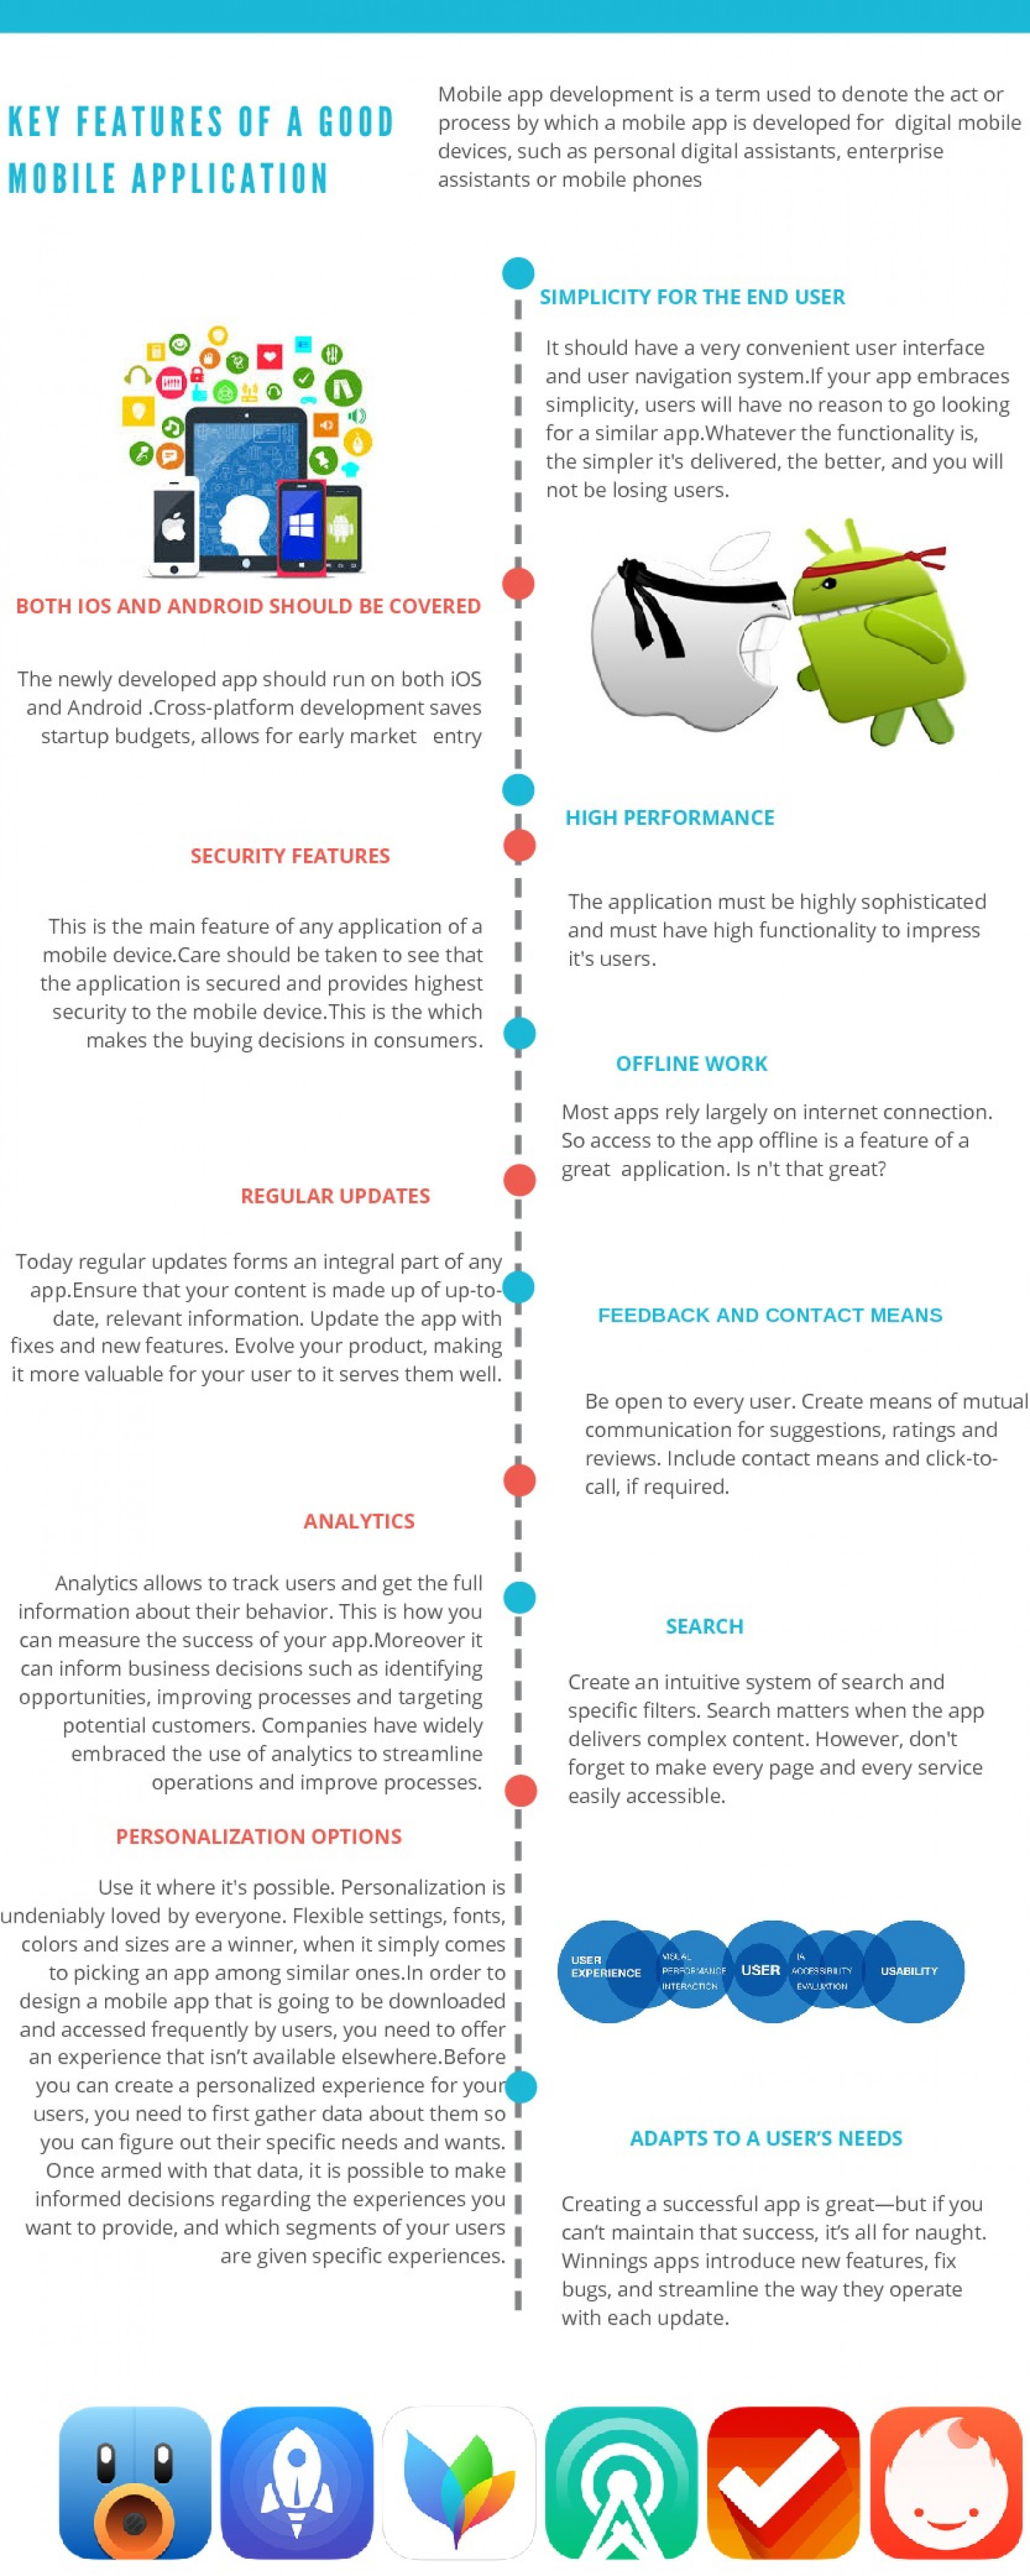 Key Features of Good Mobile Application Infographic